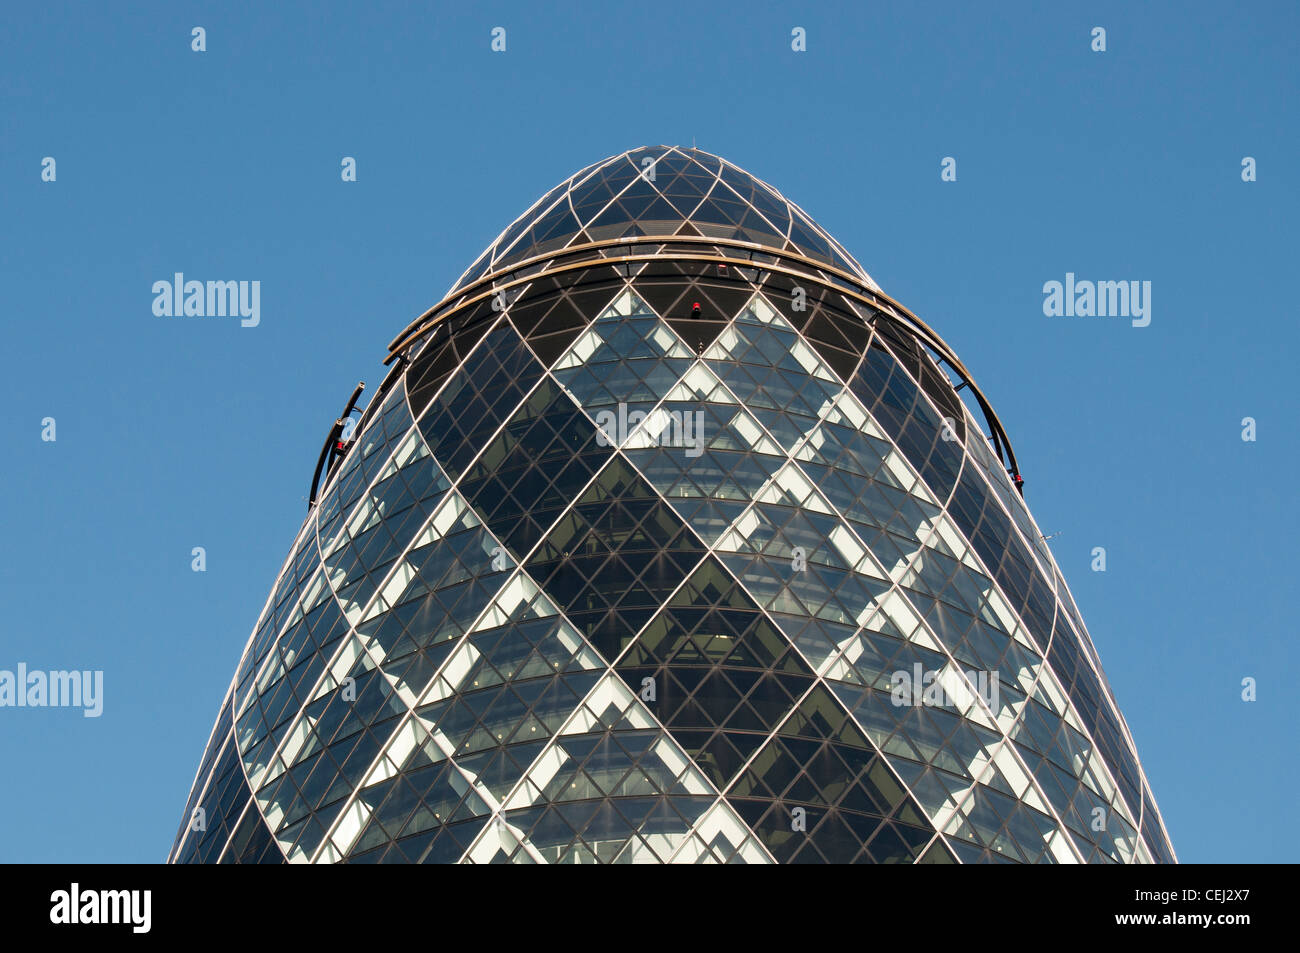 30 St Mary Axe (Swiss Re Building or Gherkin) Skyscraper by Norman Foster, City of London, England, United Kingdom - Stock Image